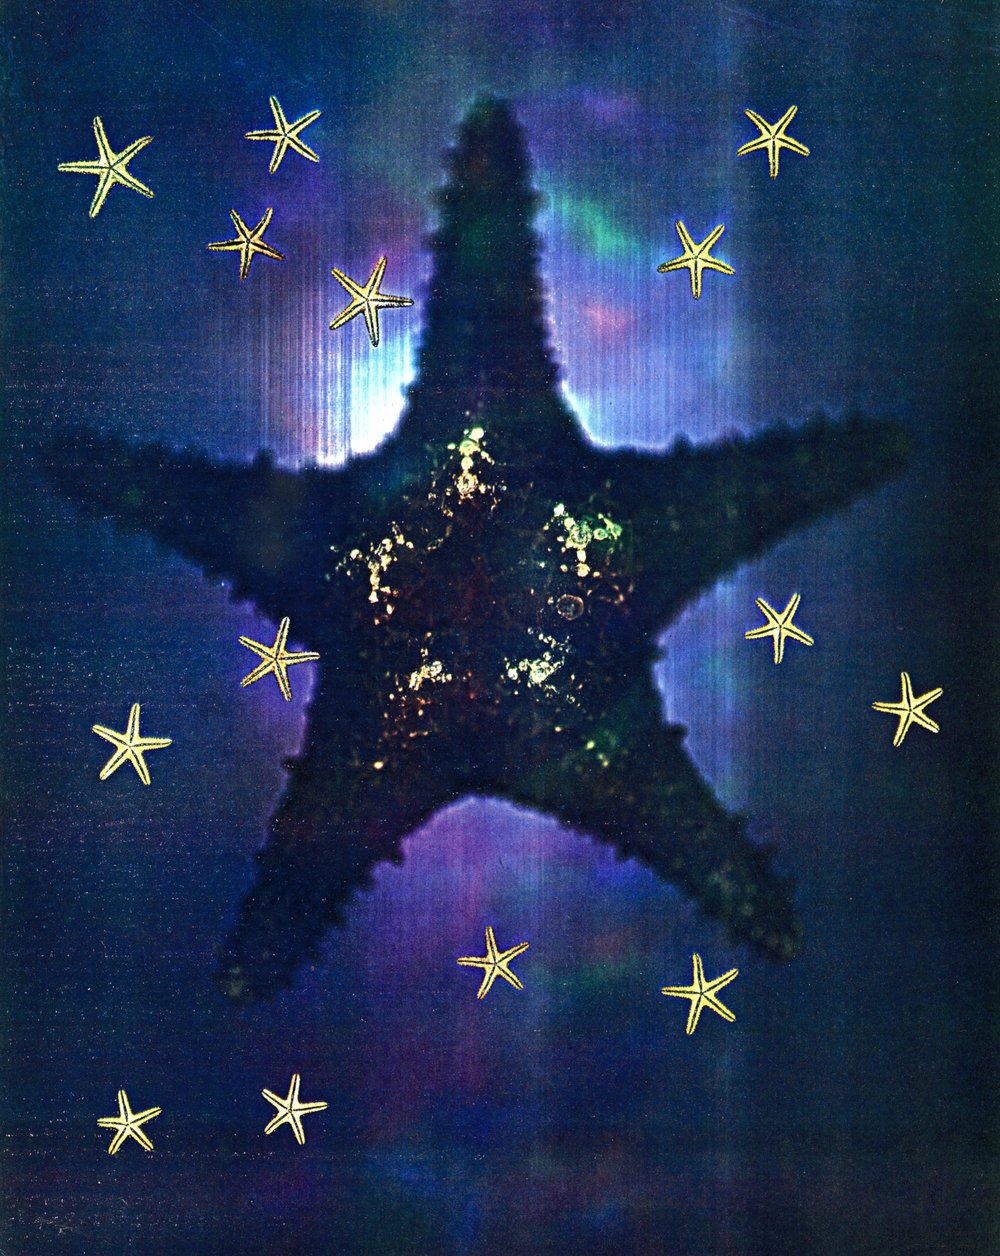 24 Starfish copy.jpg